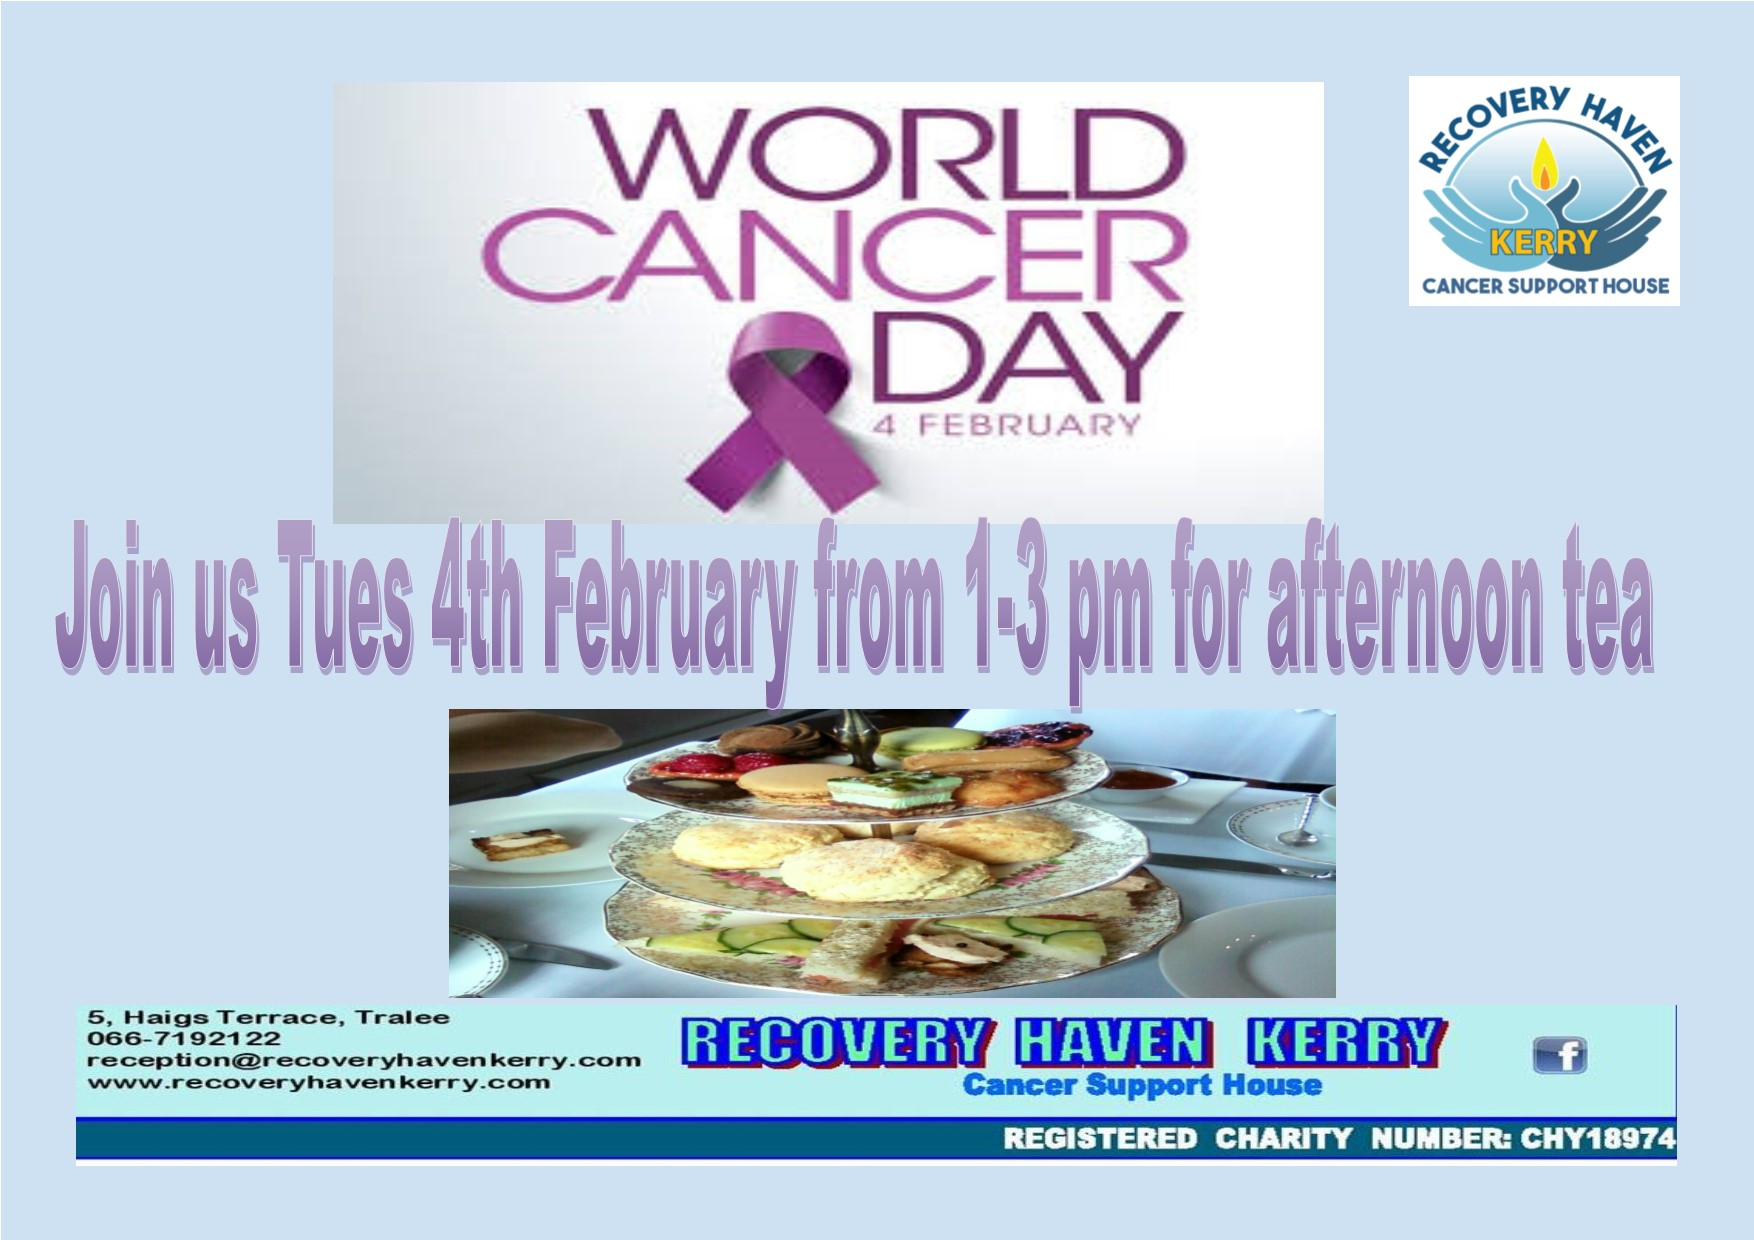 World Cancer Day afternoon tea